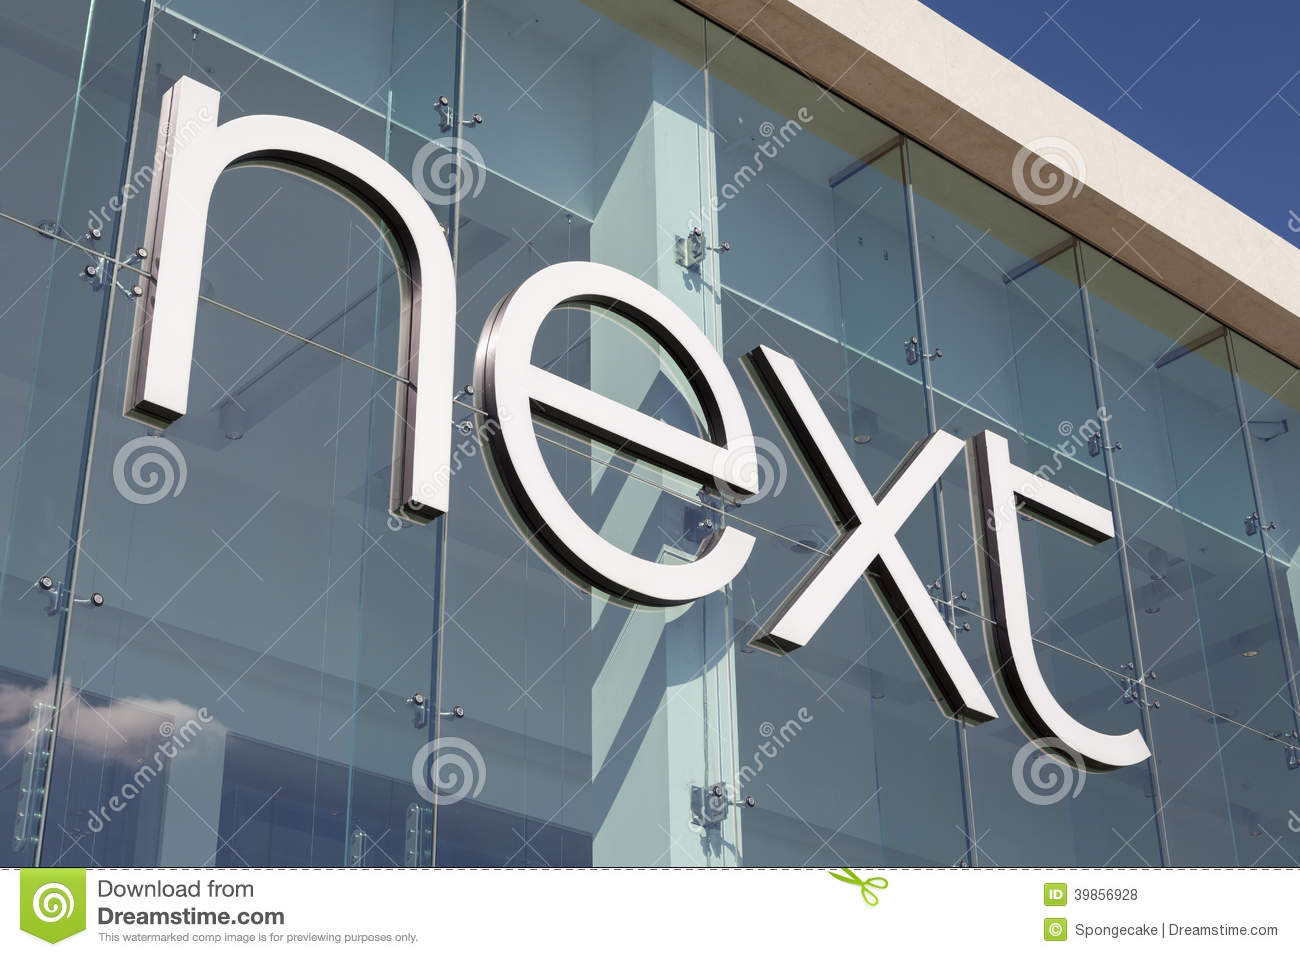 uk store get cheap new authentic Next store entrance sign editorial stock photo. Image of ...